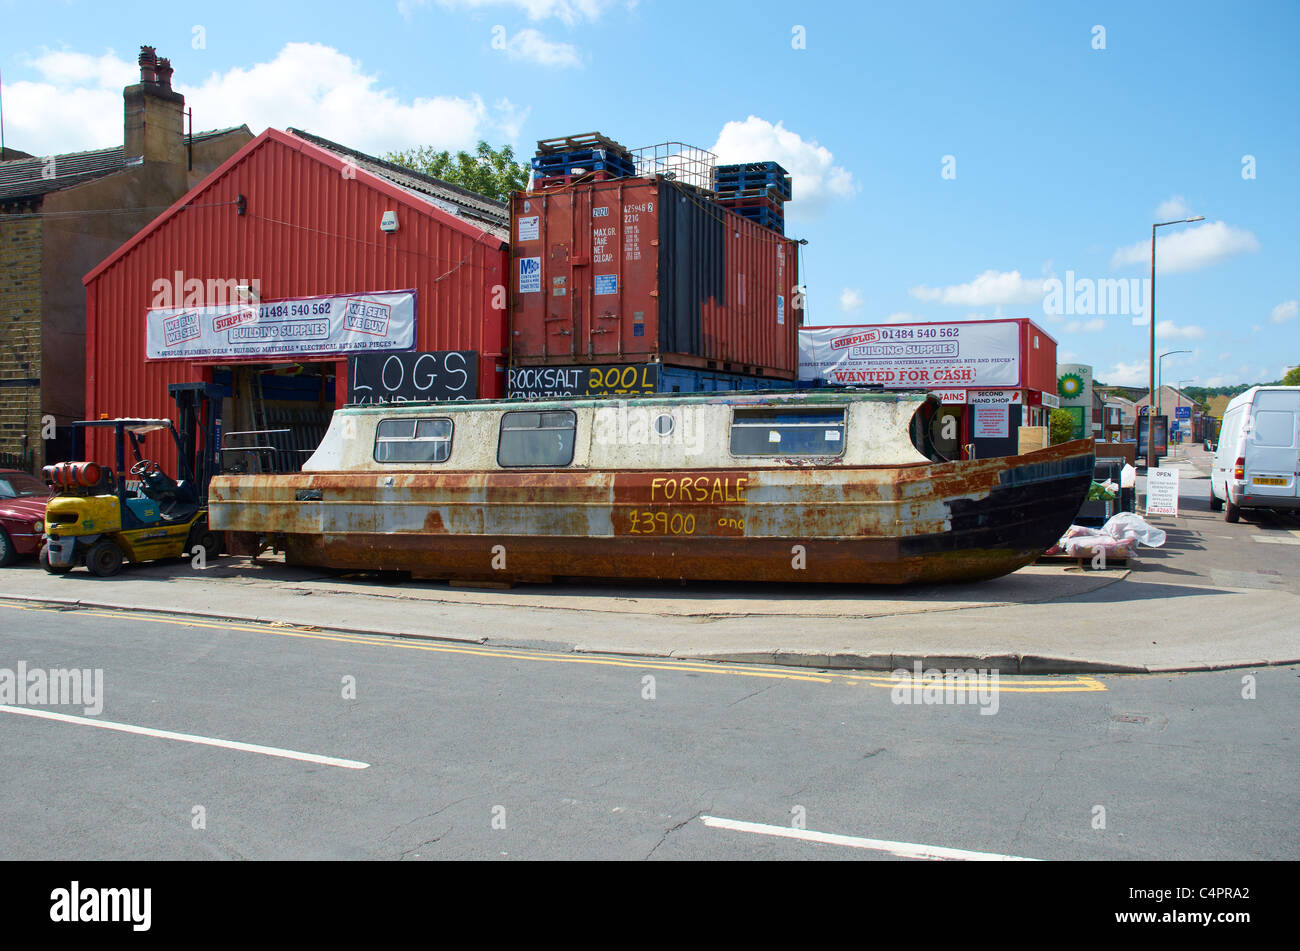 Canal barge for sale (on the street) - Stock Image